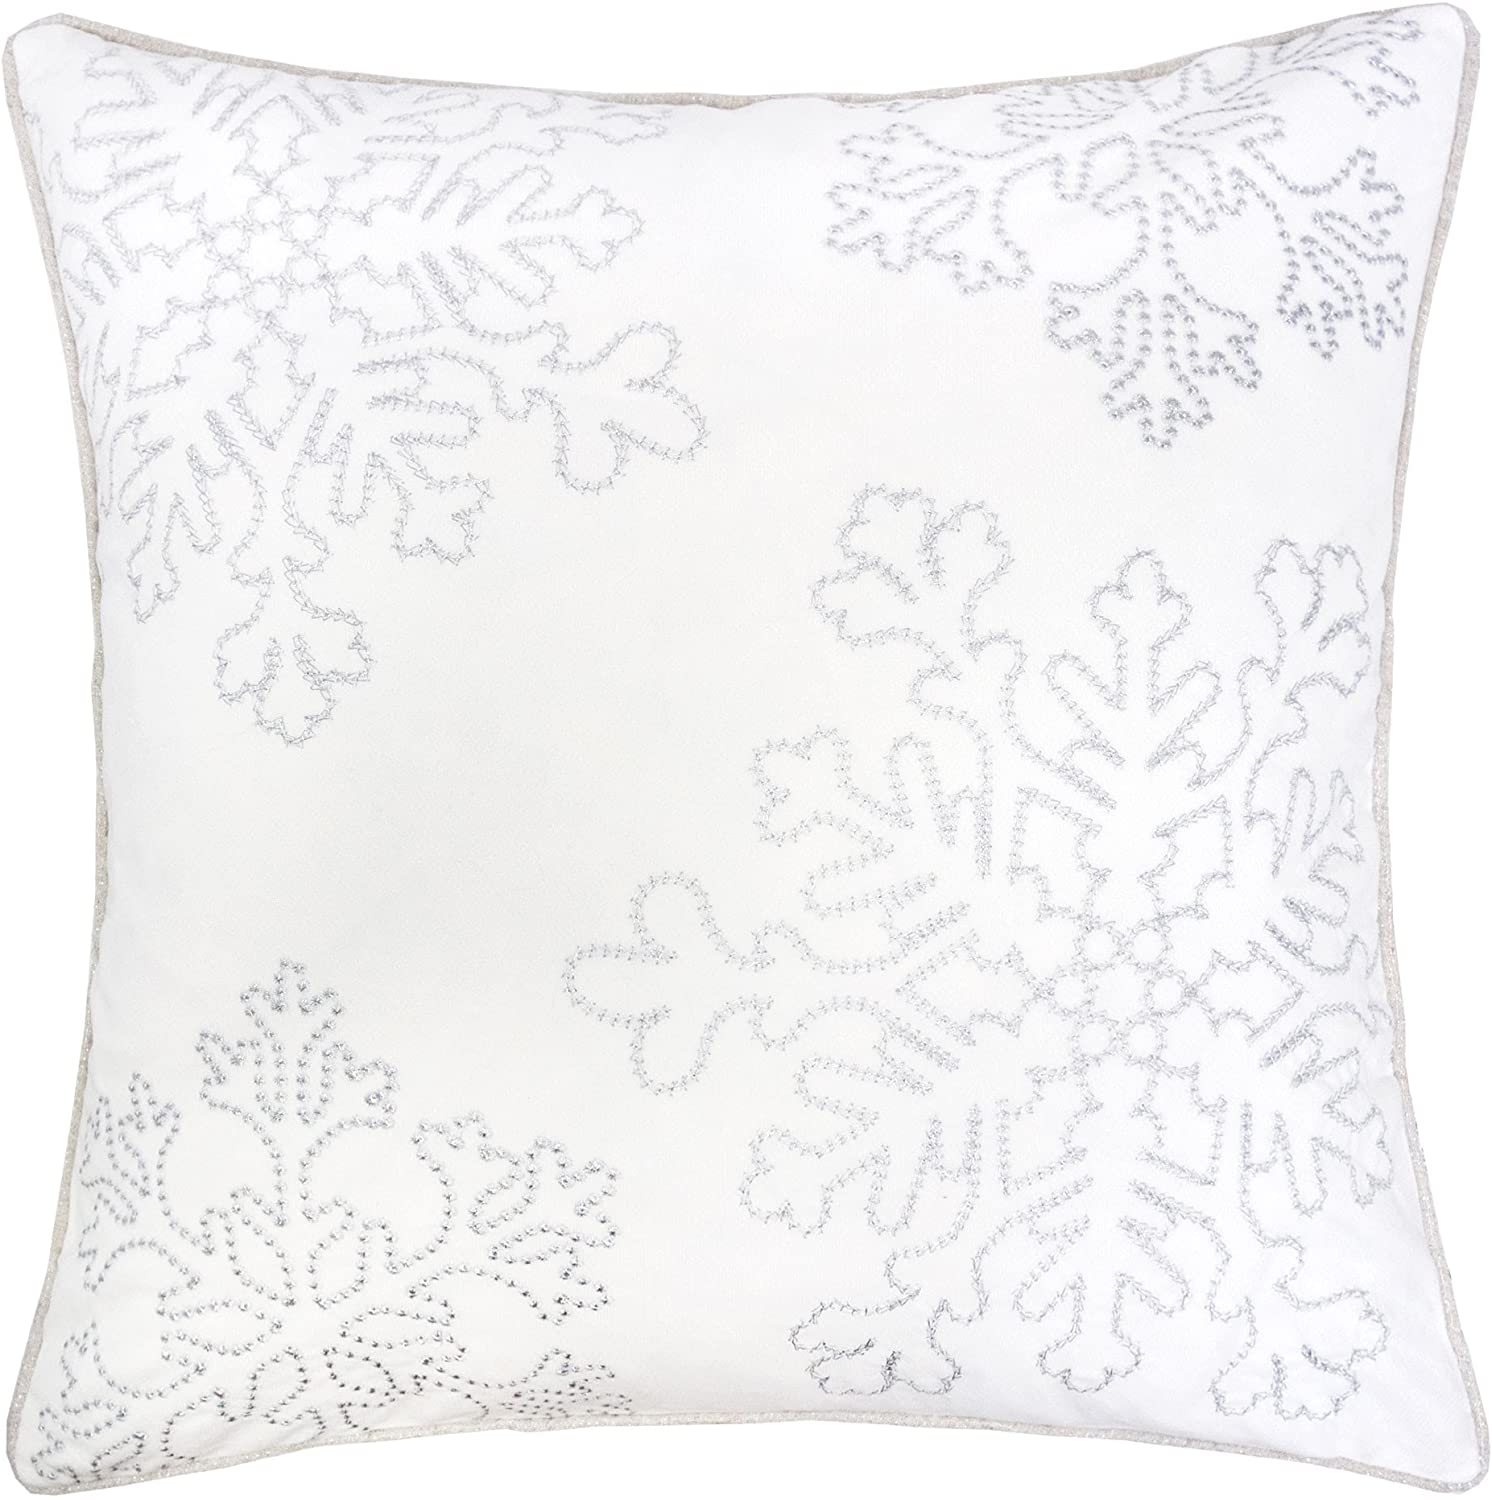 Homey COZY Embroidery White Velvet Throw Pillow Cover, Merry Christmas Series Snowflake Luxury Soft Fuzzy Cozy Warm Slik Gift Square Couch Cushion Pillow Case 20 x 20 Inch, Cover Only